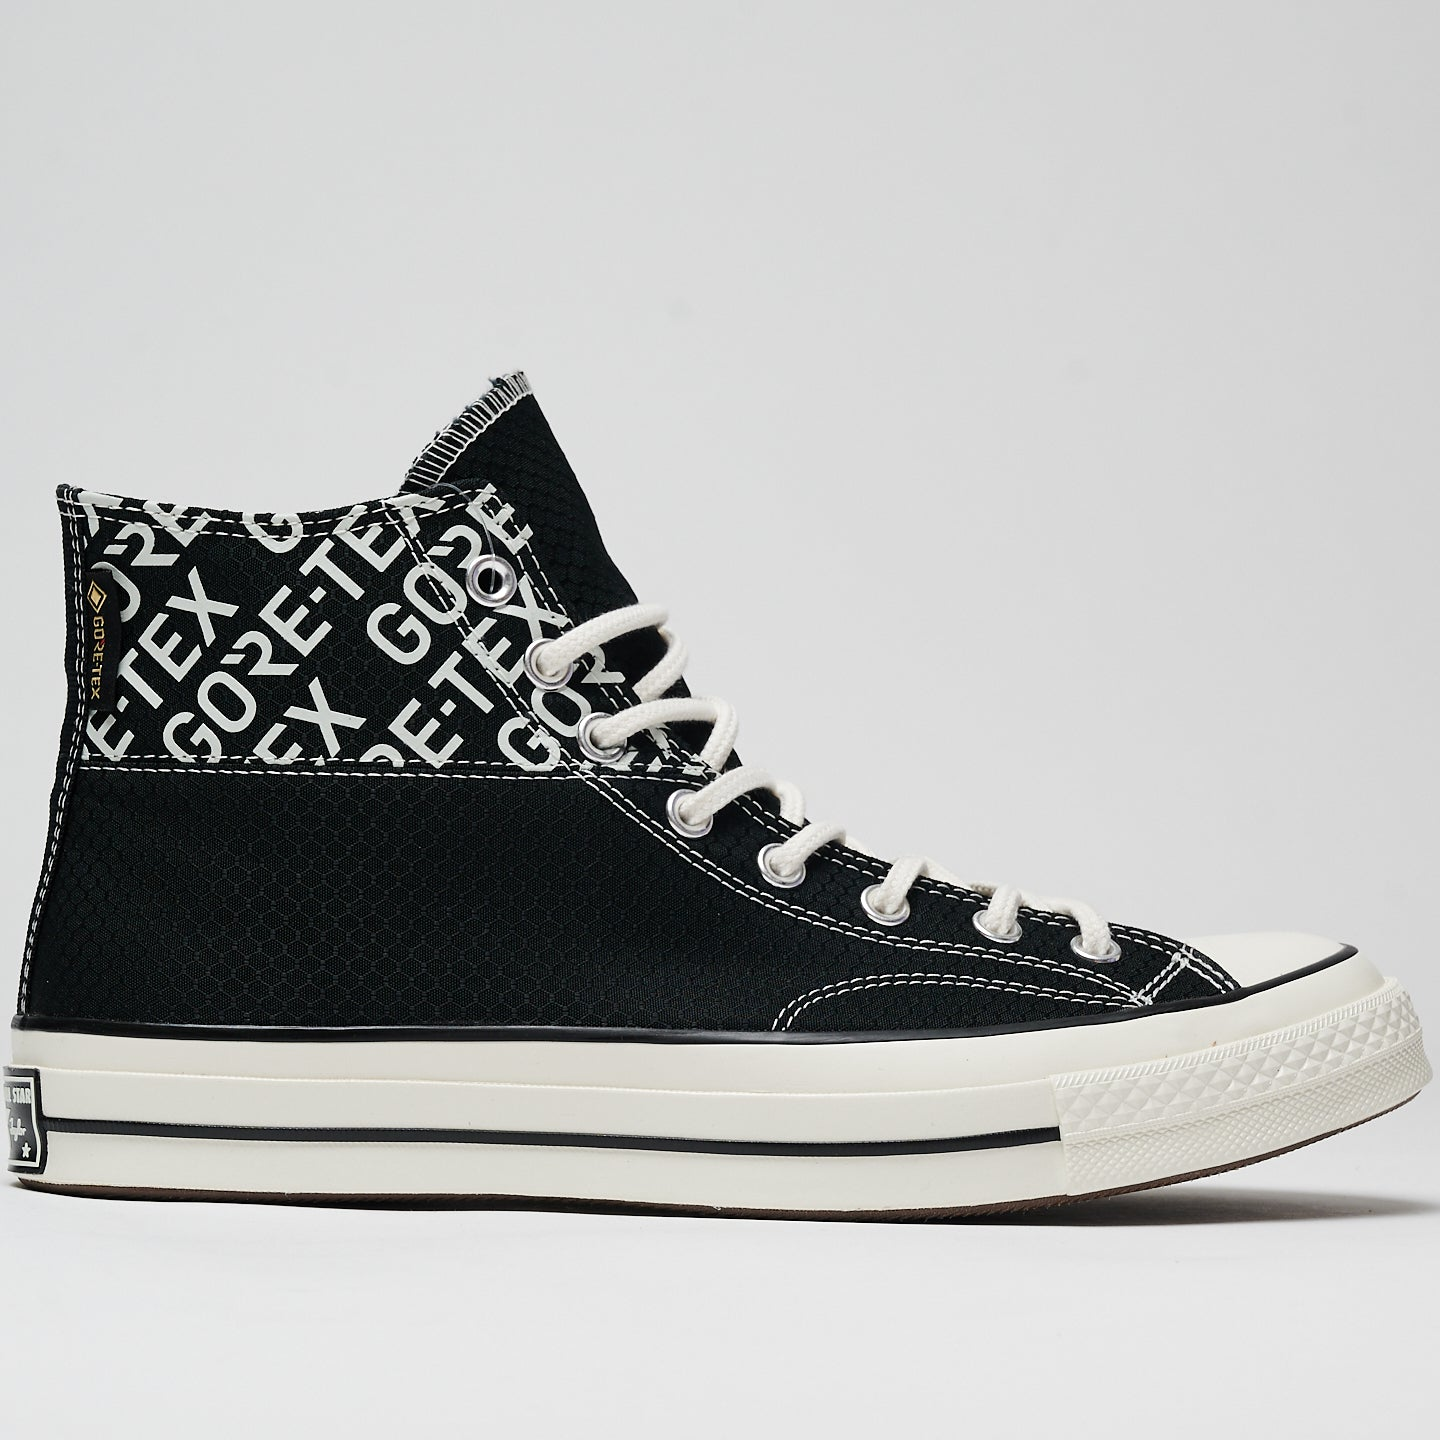 CONVERSE M'S FOOTWEAR CHUCK 70 GORE-TEX HIGH TOP - BLACK/EGRET